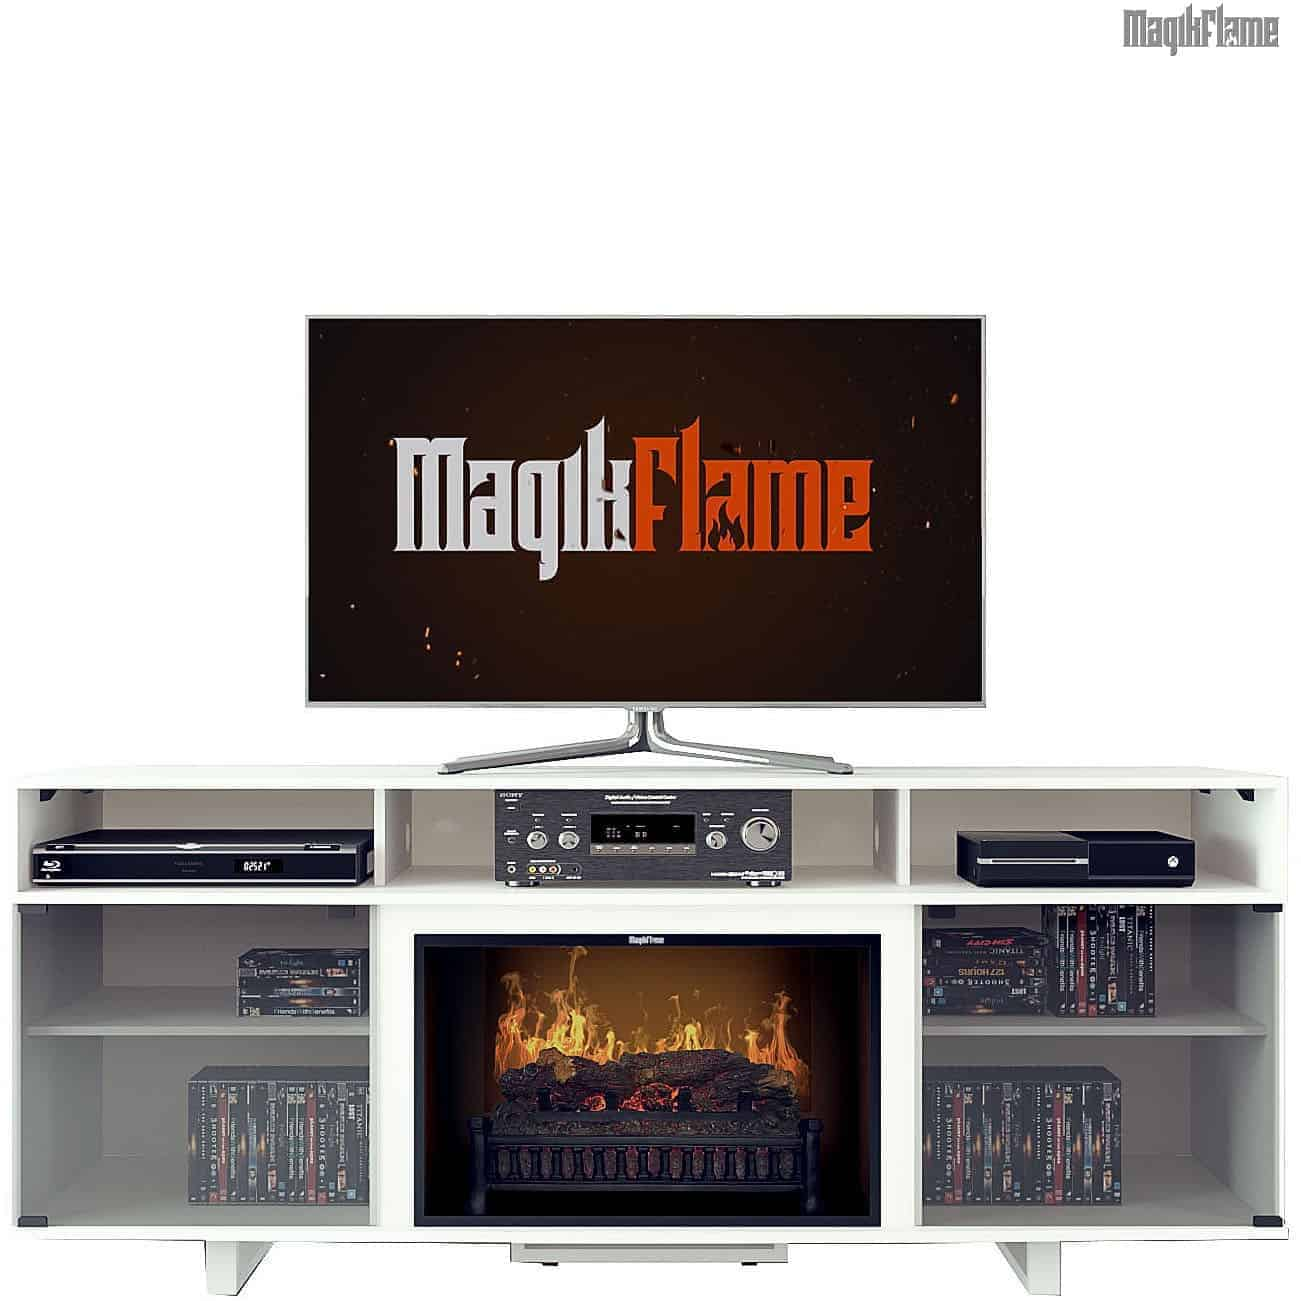 MGK 26MM9872 NT01 Gloss White Wood Media Mantel Fireplace Front View w TV